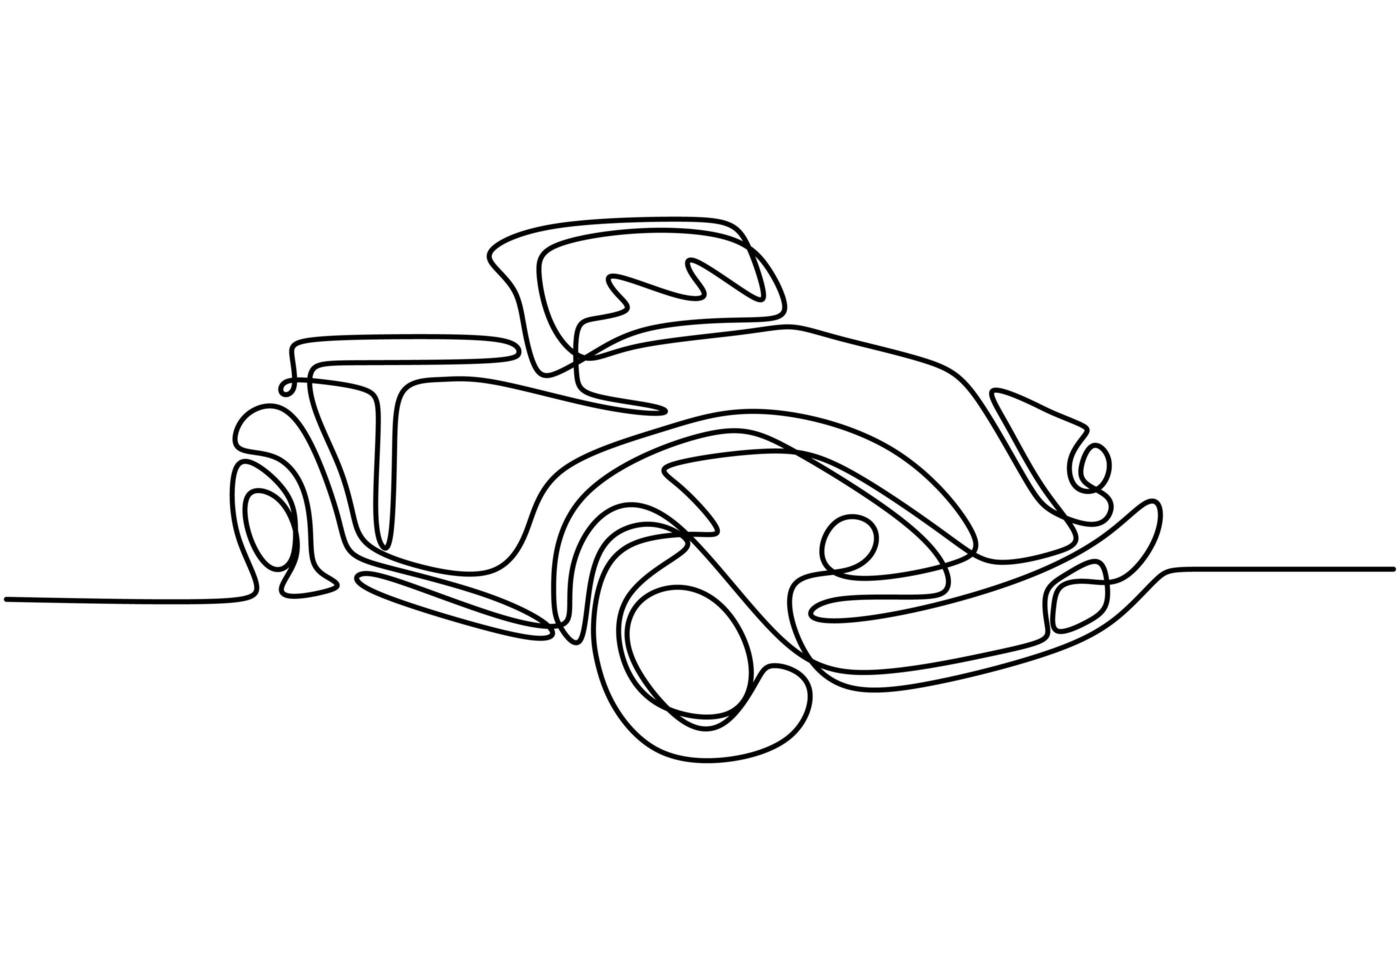 One single line drawing of old retro vintage auto car. Classic transportation vehicle concept. Vintage racing car driving on dusty road. Continuous line draw design illustration vector